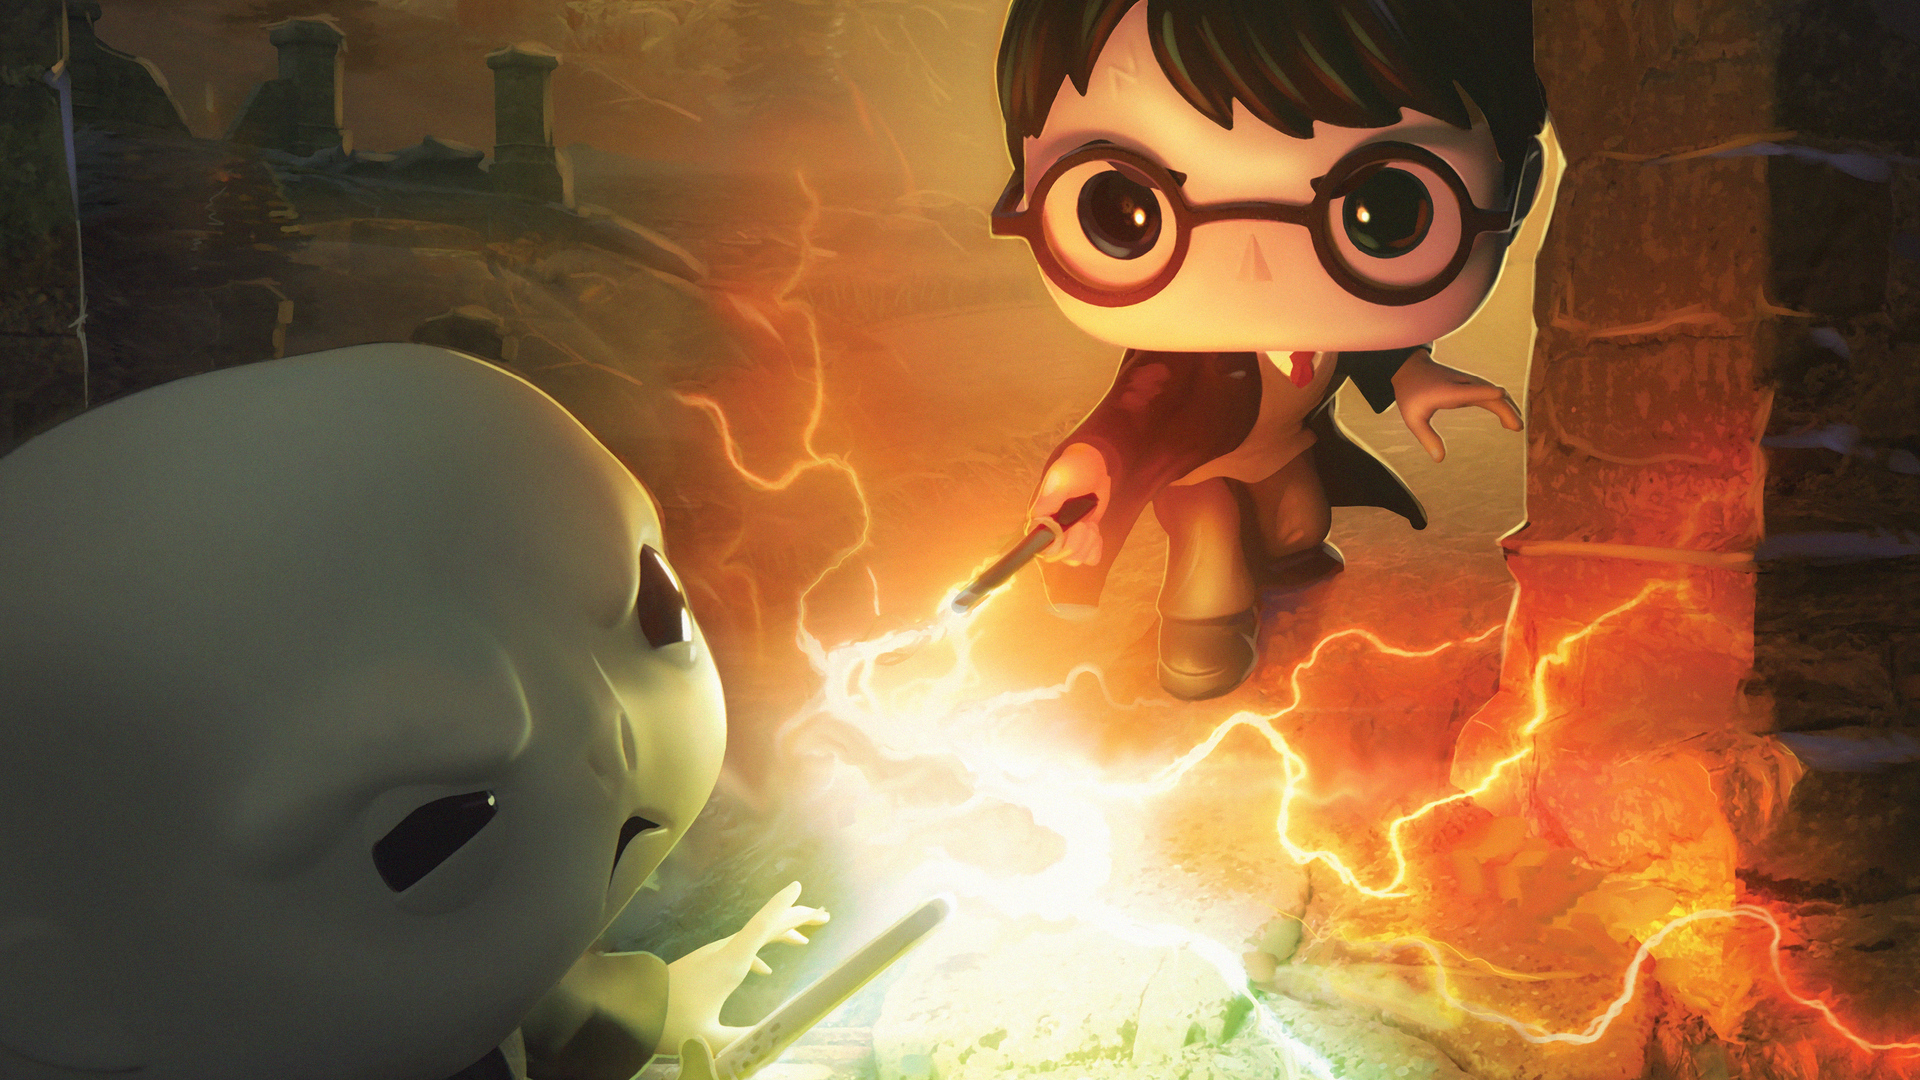 1920x1080 Harry Potter Dc Funkoverse 4k Laptop Full Hd 1080p Hd 4k Wallpapers Images Backgrounds Photos And Pictures